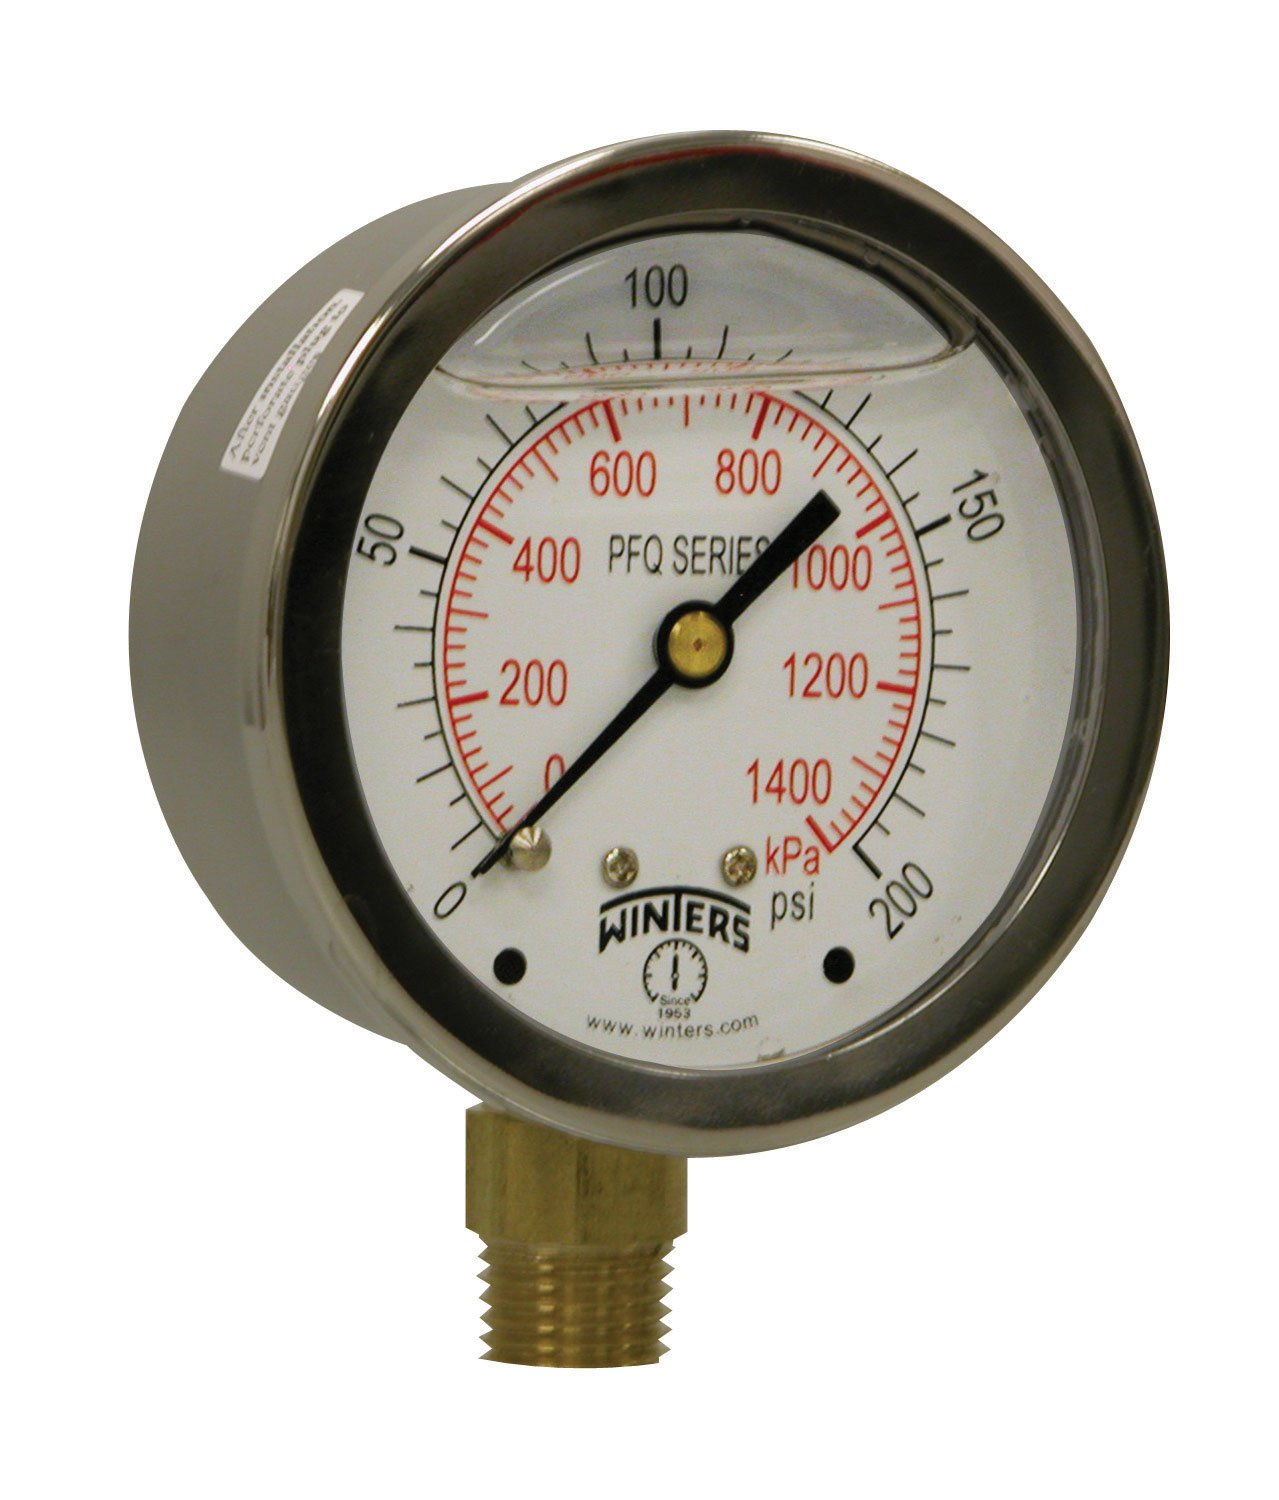 Seasonal Wrap Introduction Max 56% OFF Winters PFQ Series Stainless Steel 304 Filled Scale Liquid Dual